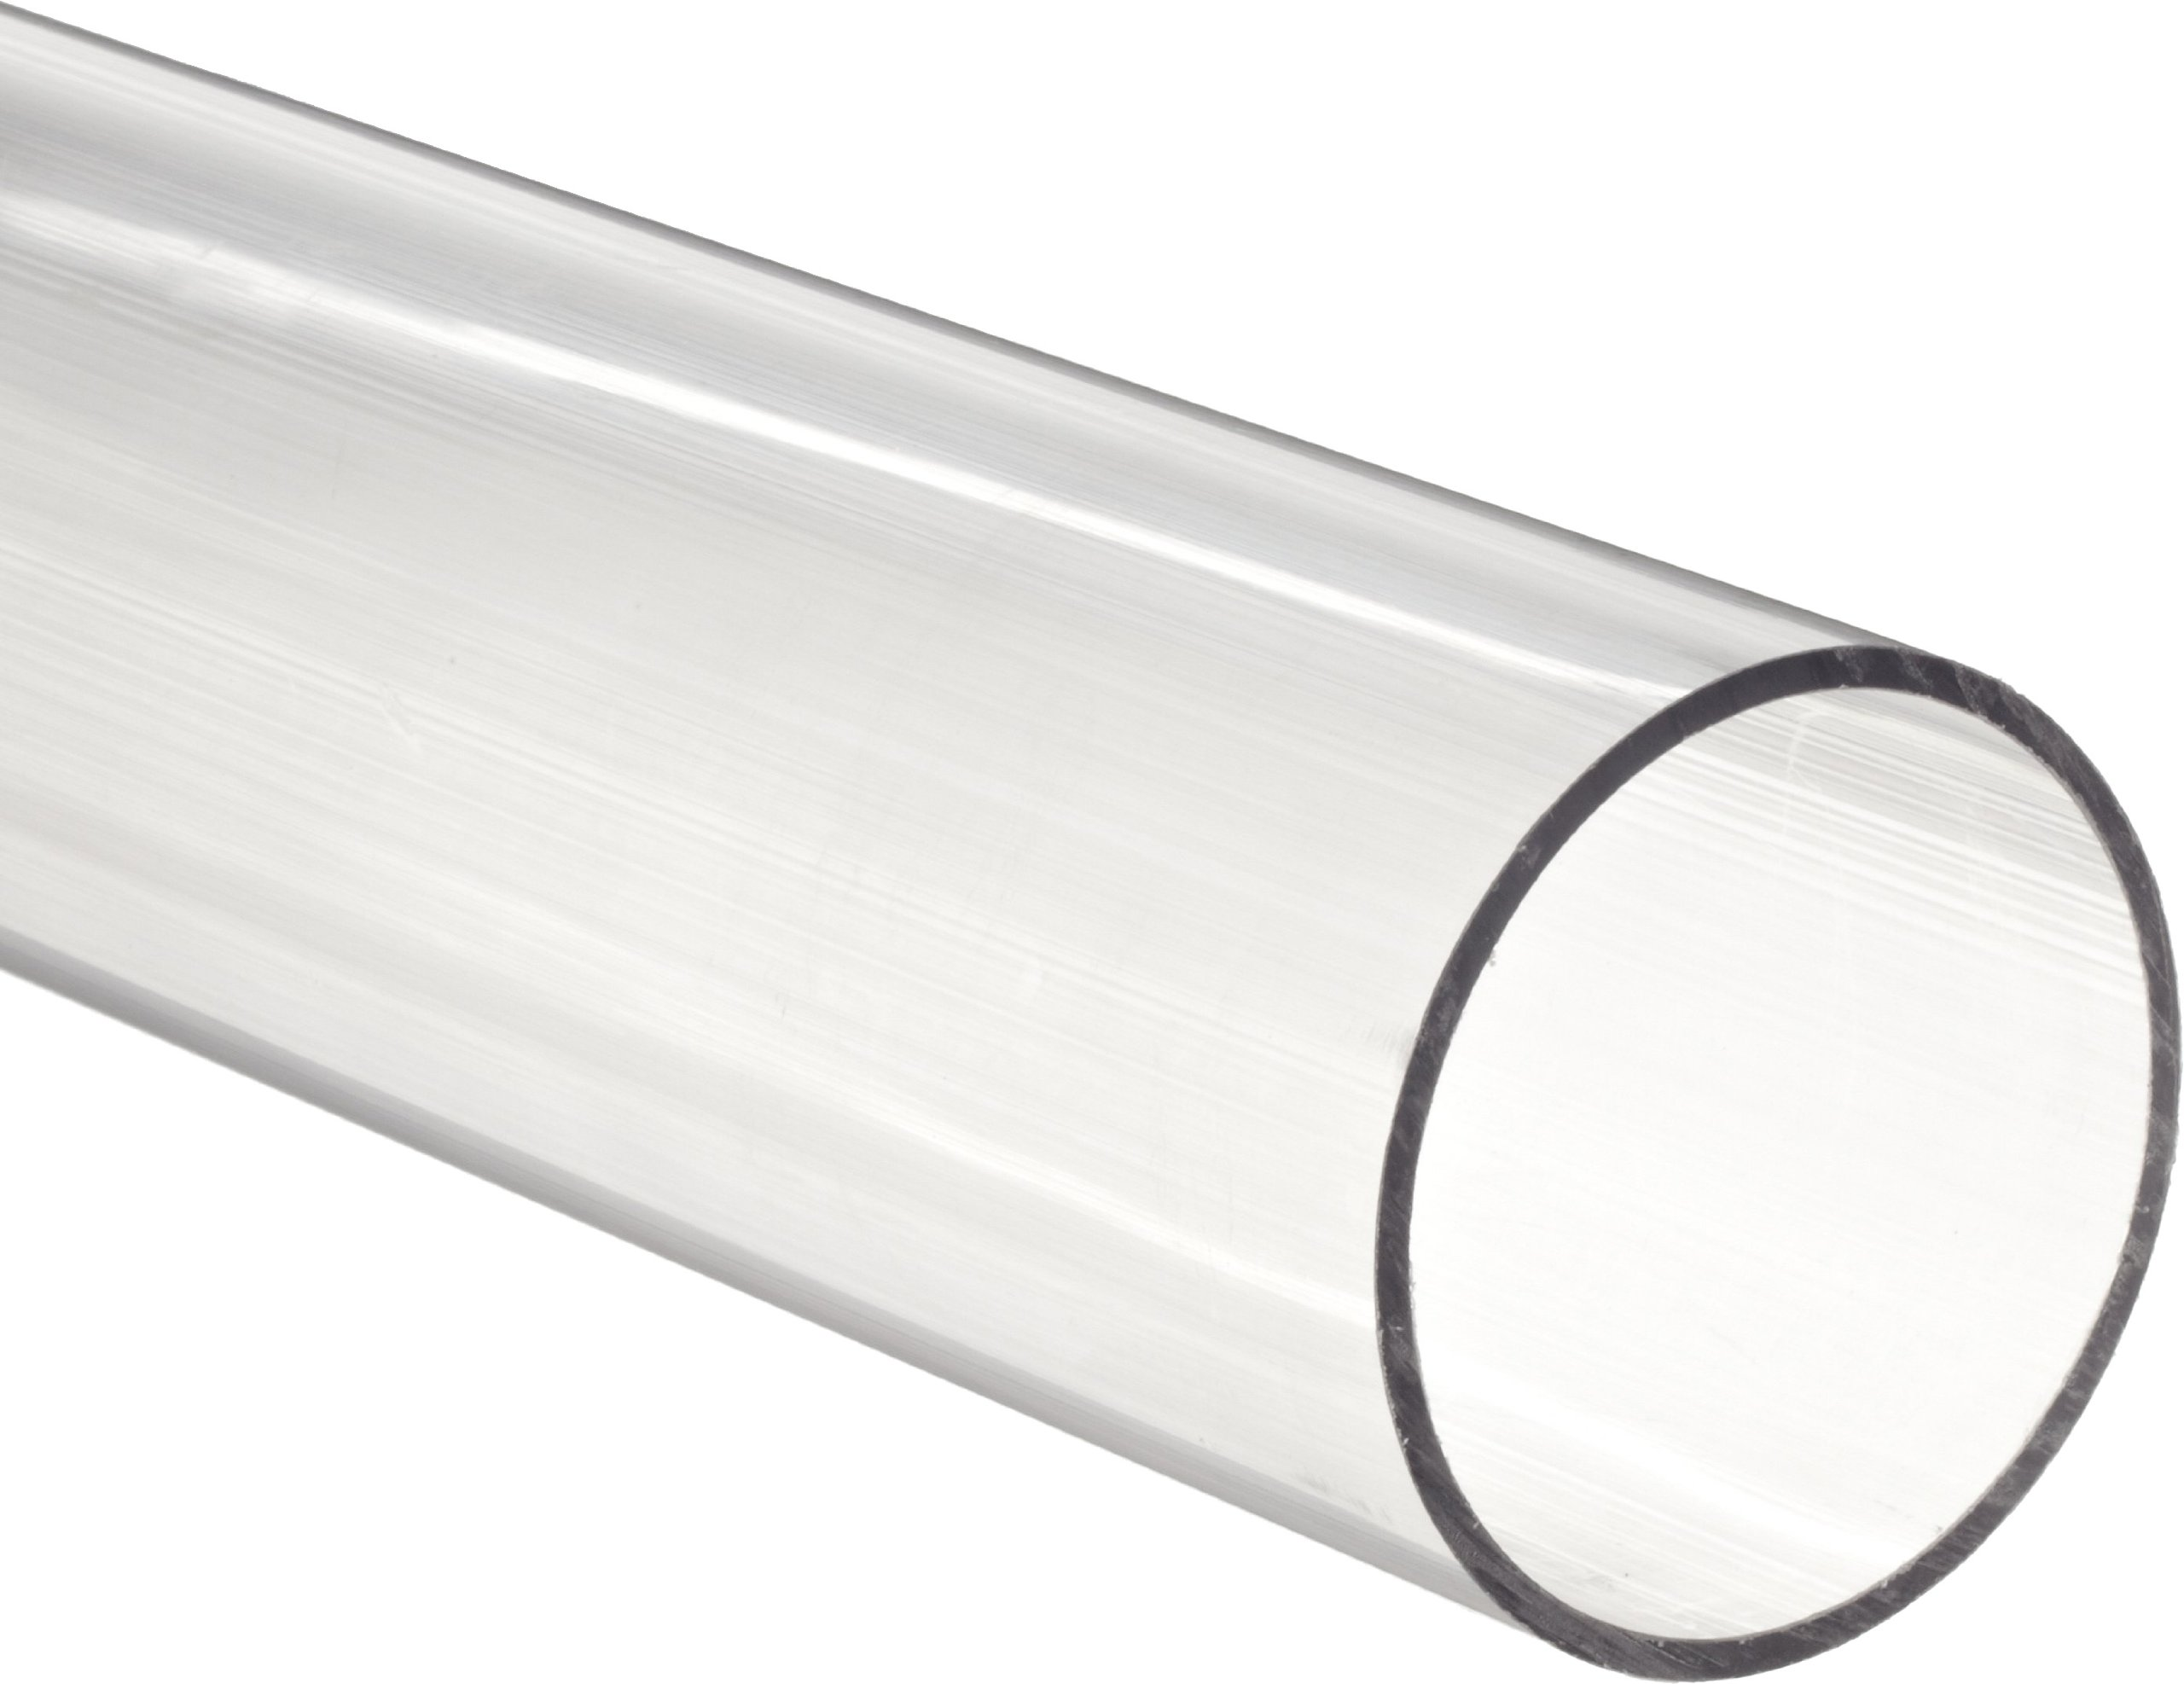 Clear Polycarbonate Tubing, 2'' OD, 1-3/4'' ID, 1/8'' Wall Thickness, 6' Length by Small Parts